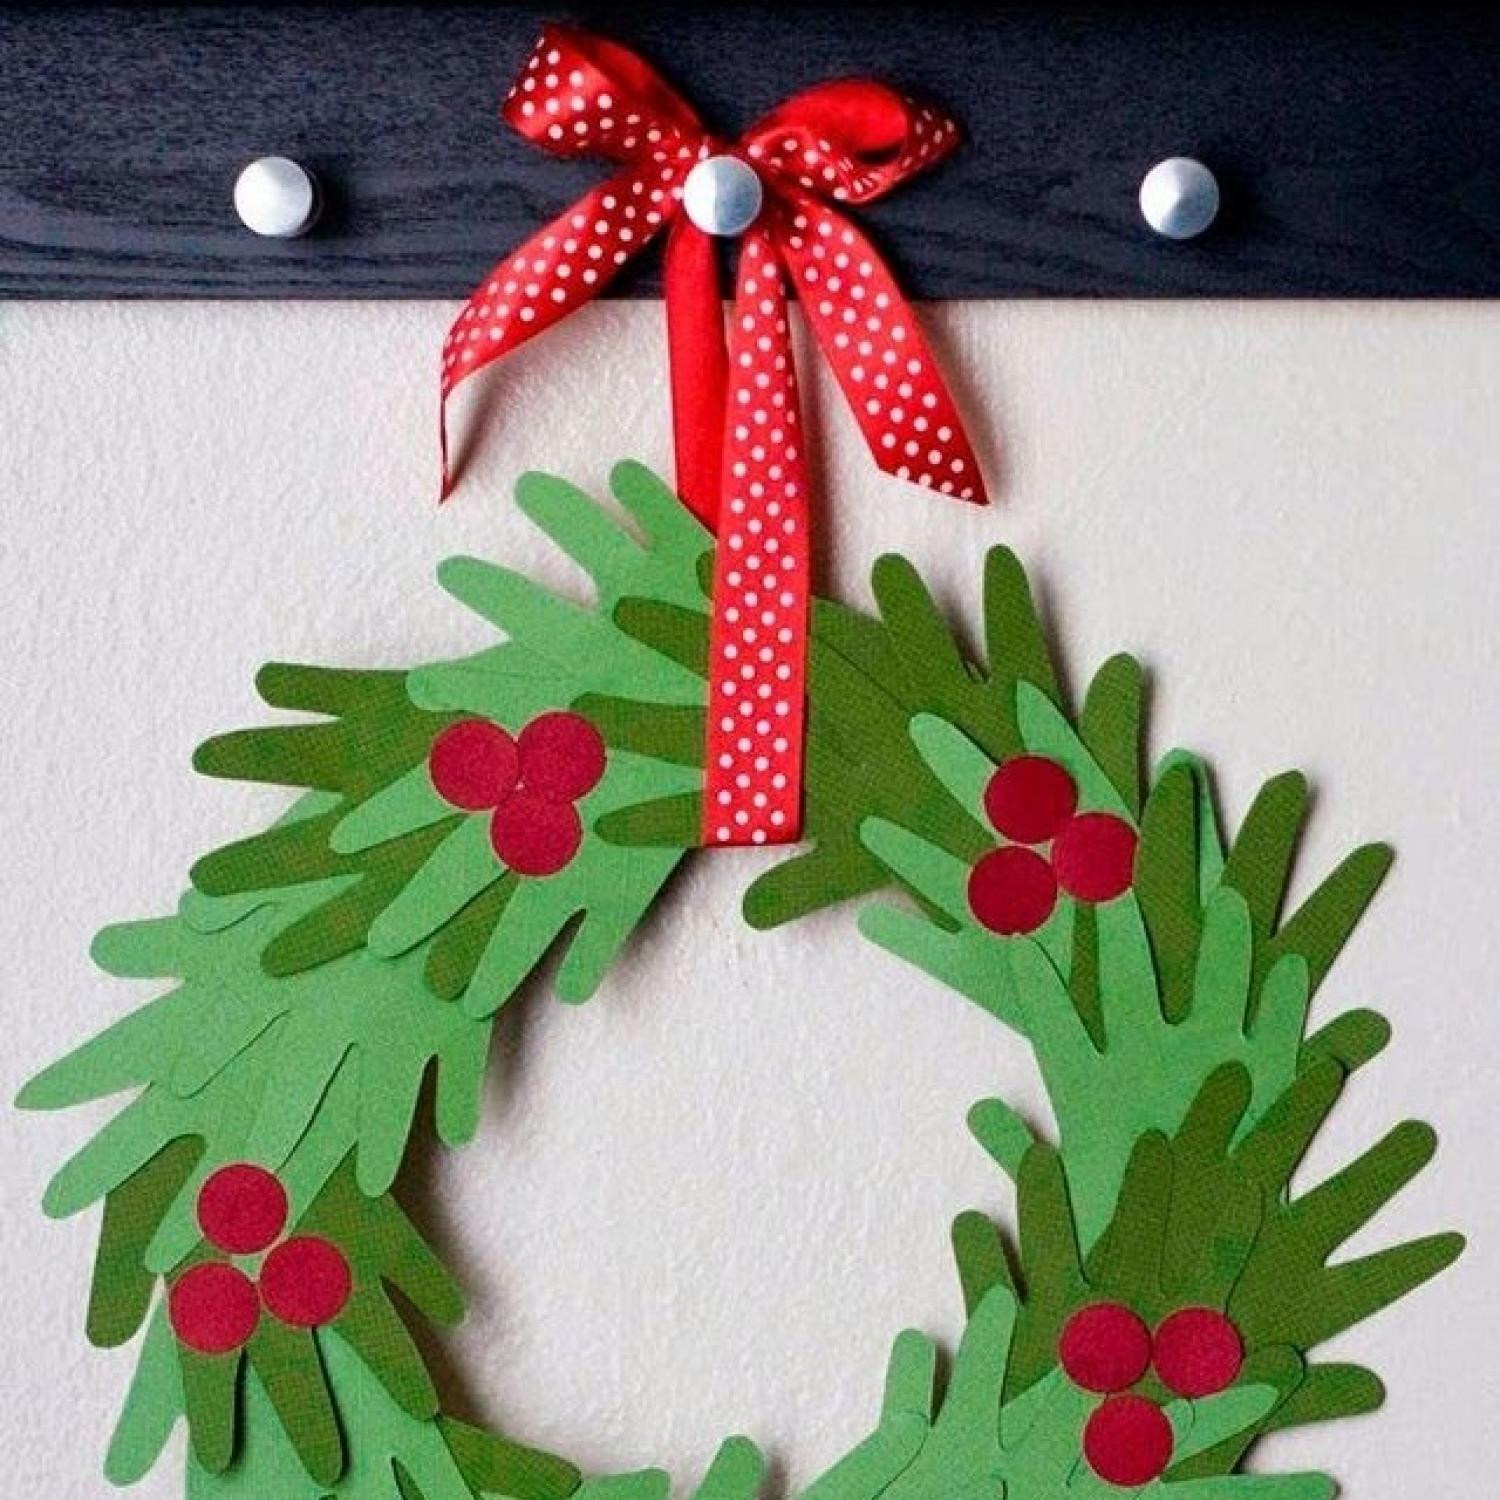 Holiday Projects For Kids  10 Handprint Christmas Crafts for Kids